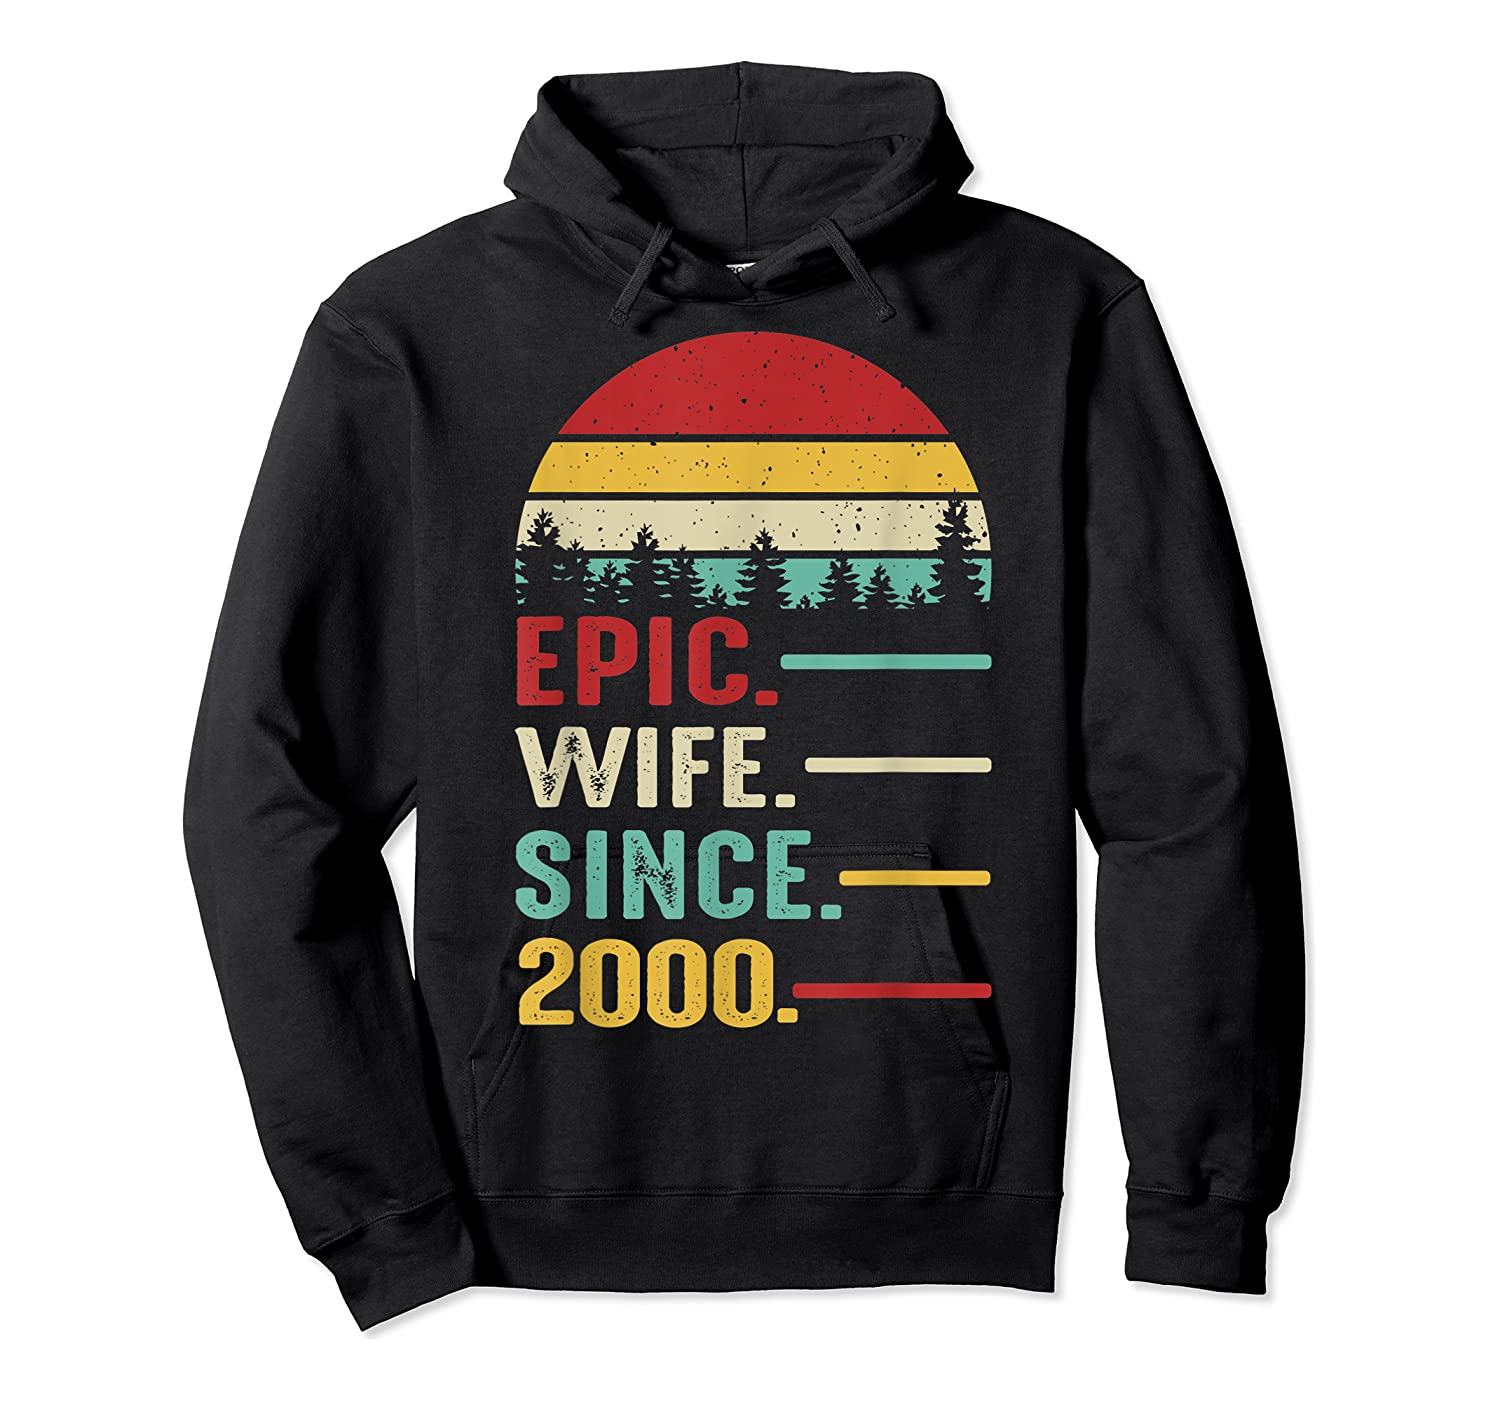 20th Wedding Anniversary Gift For Her Epic Wife Since 2000 Shirts Unisex Pullover Hoodie